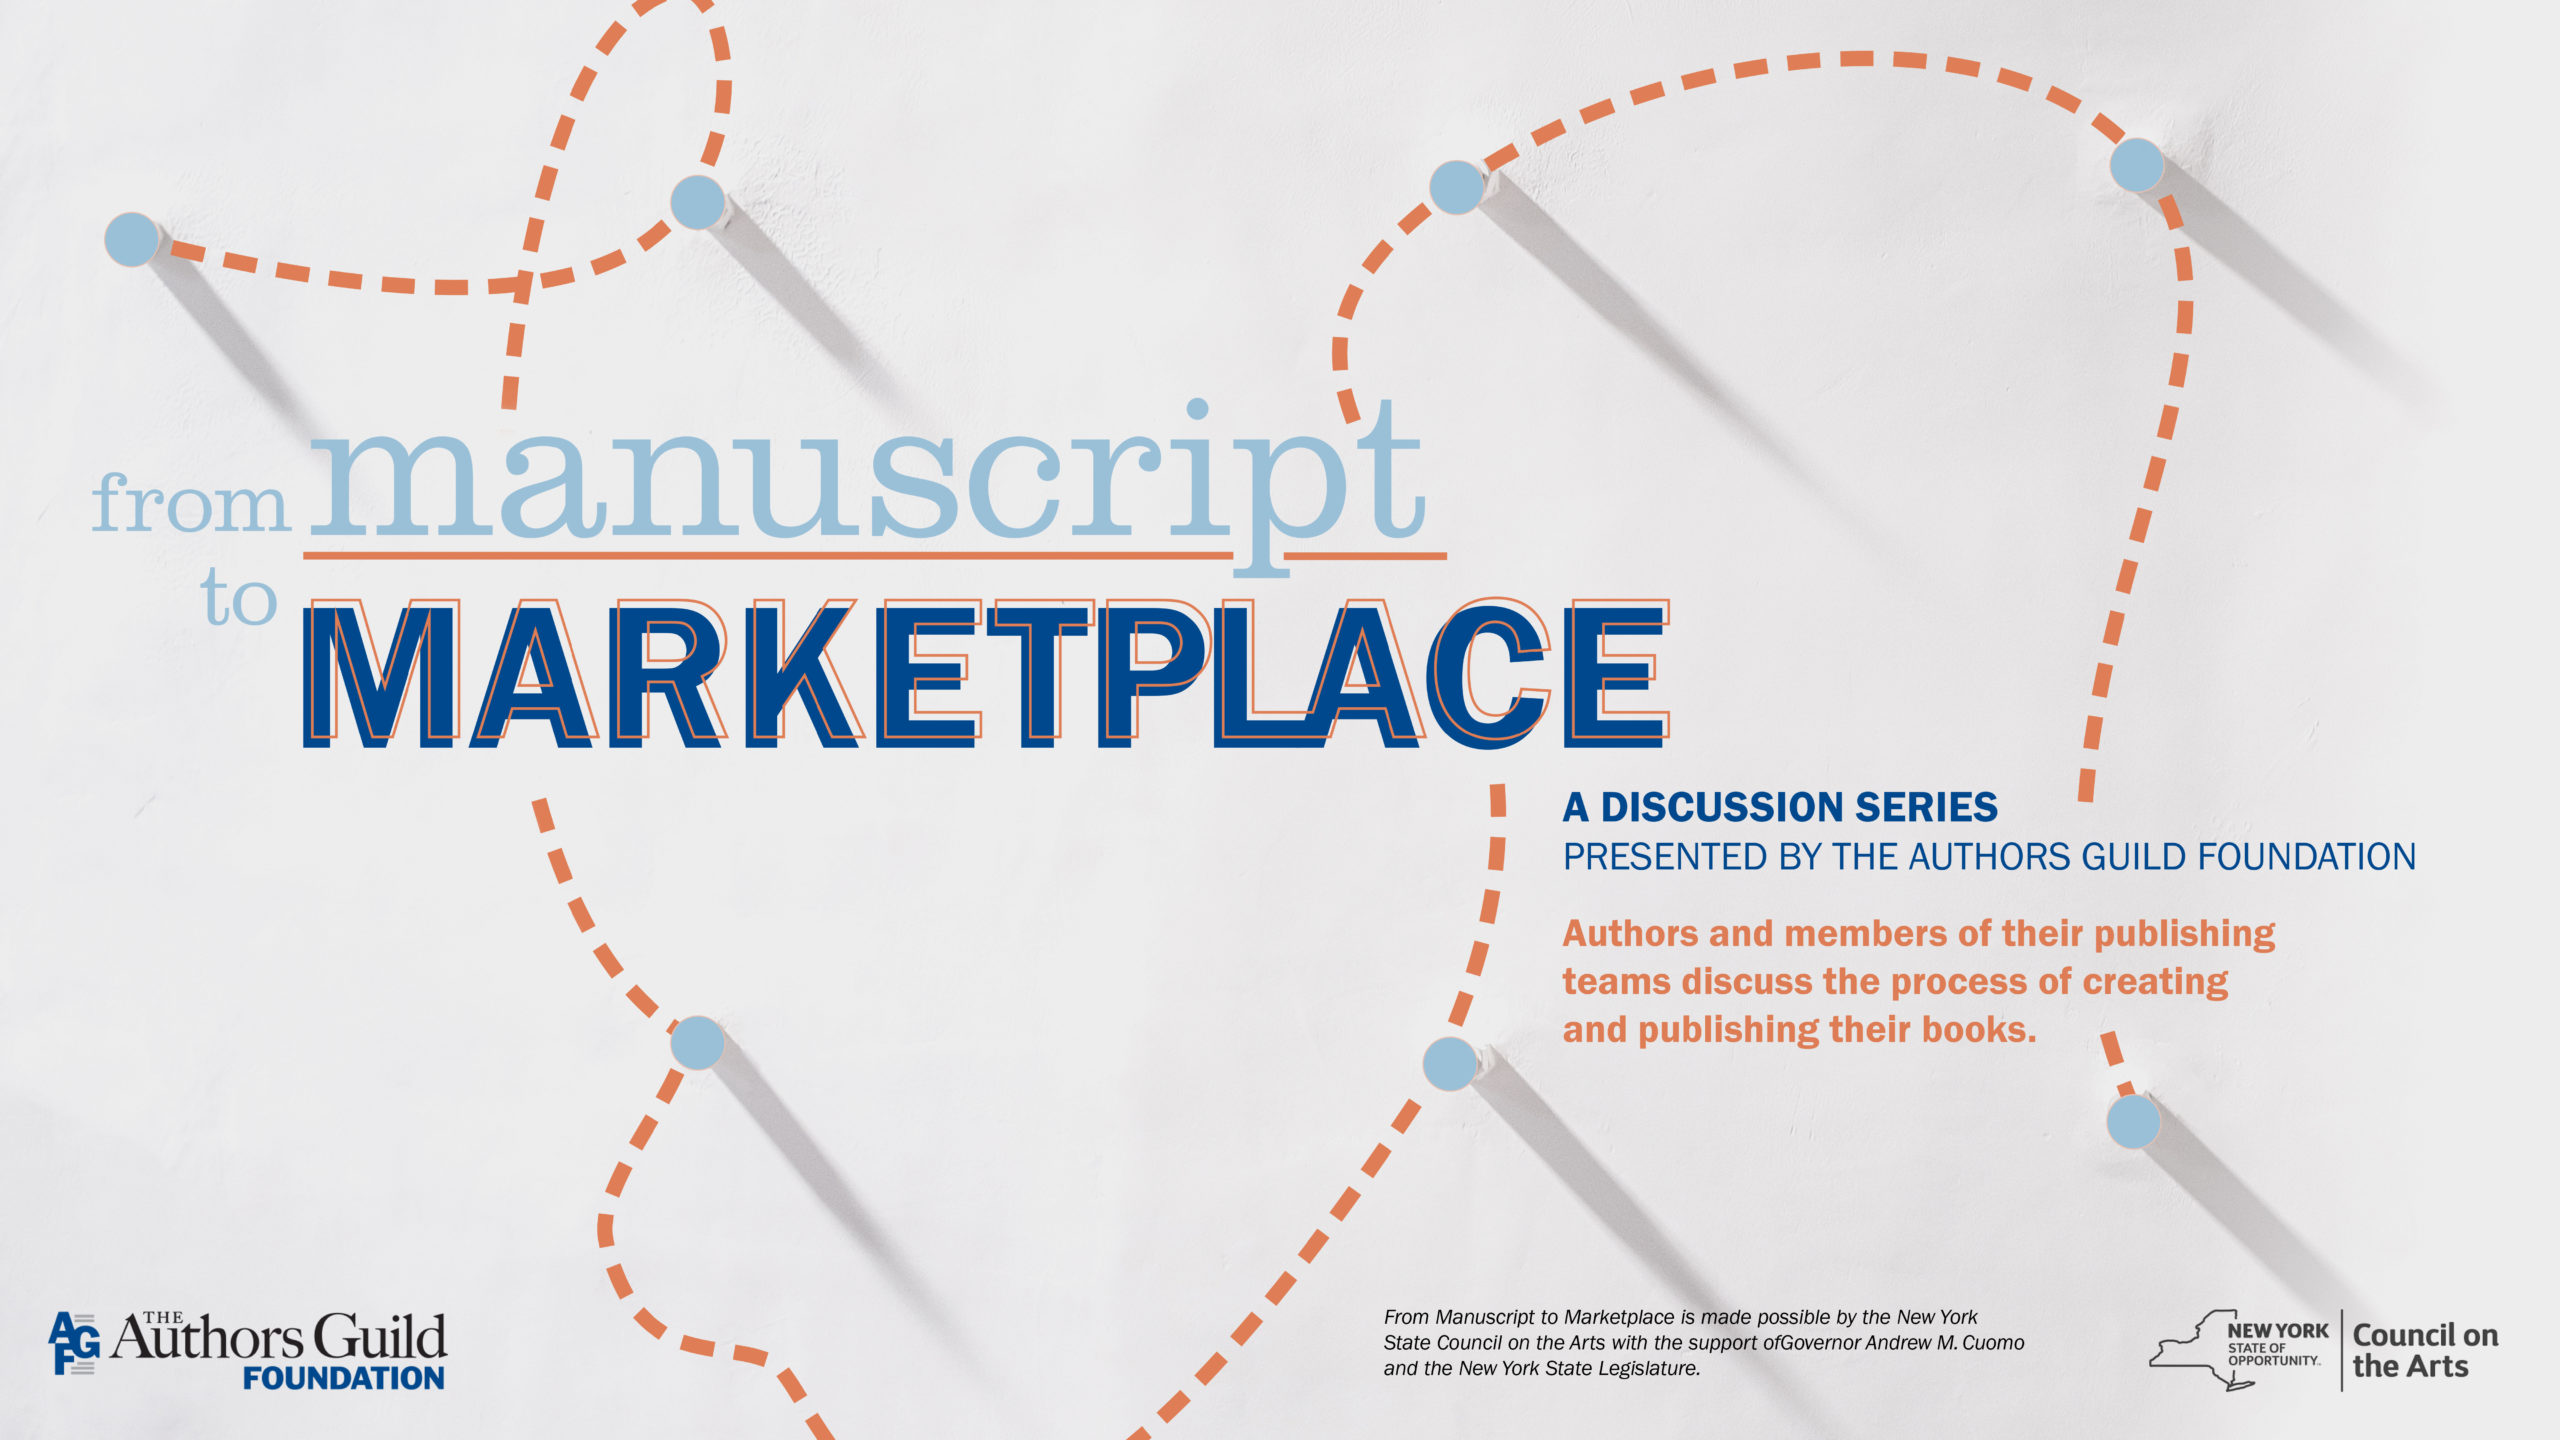 manuscript to marketplace 2020 - the authors guild